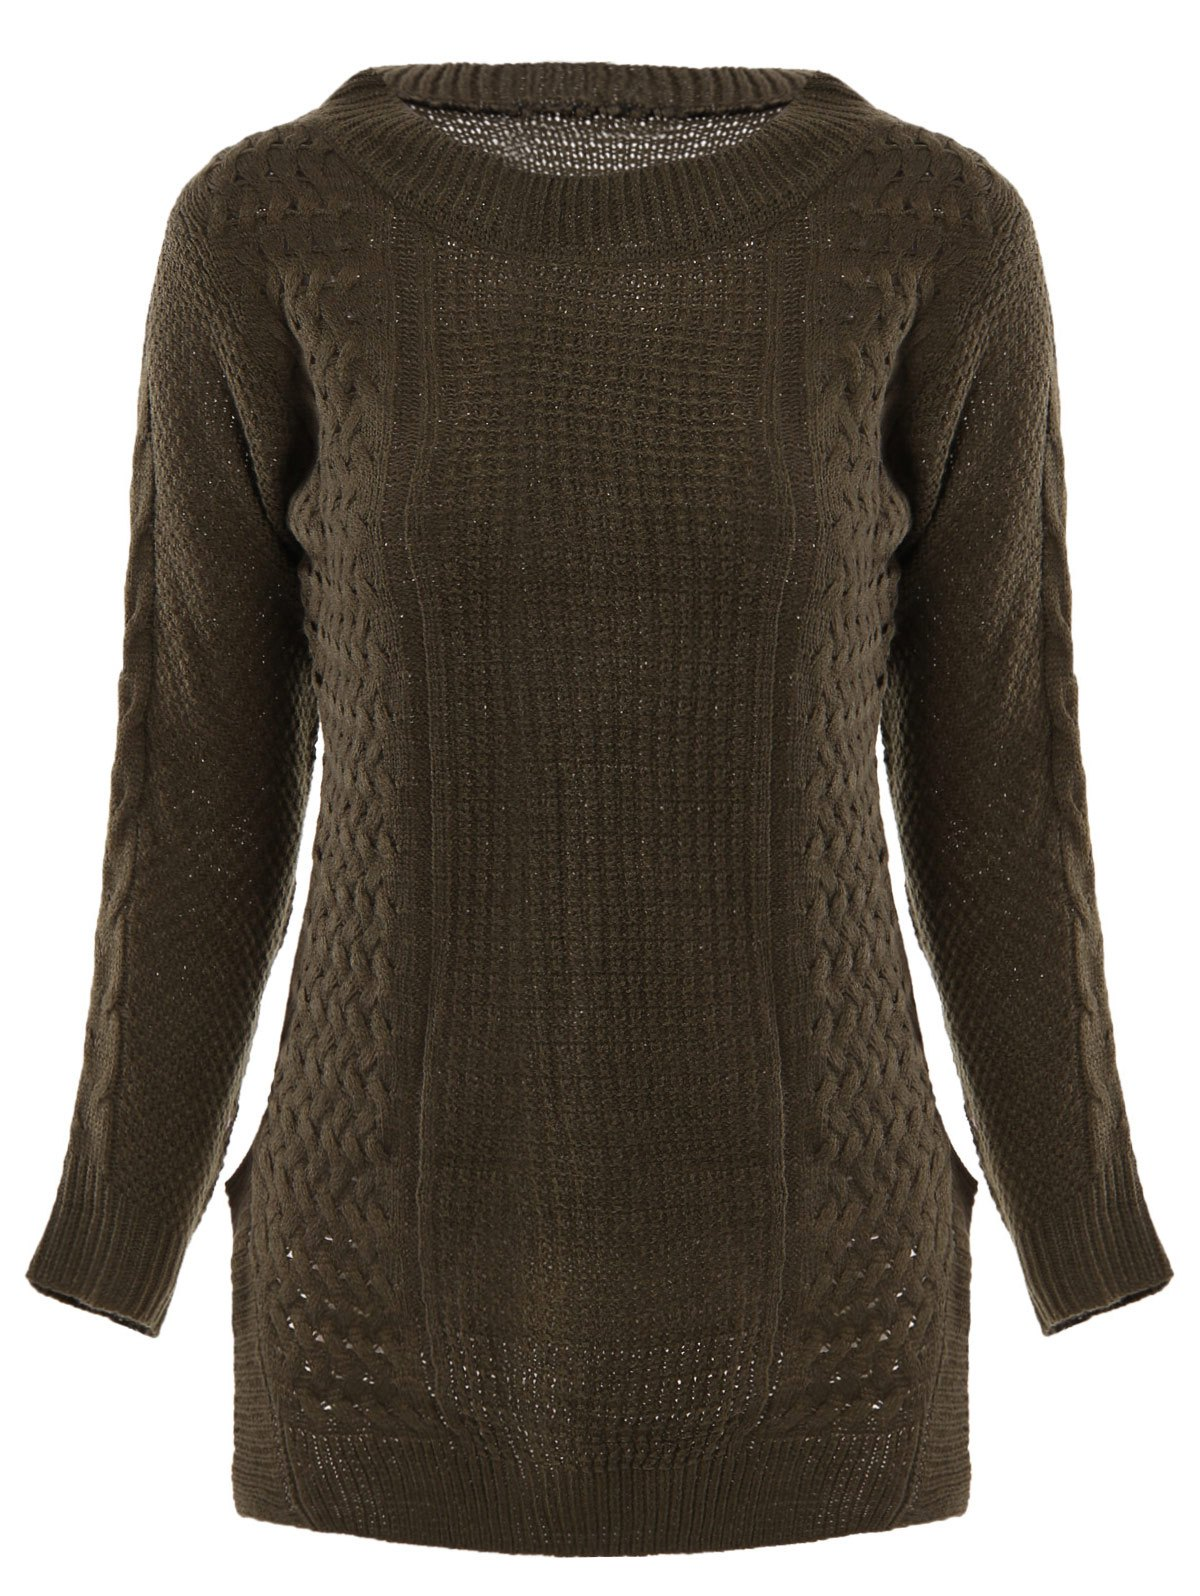 New Stylish Round Neck Long Sleeve Solid Color Furcal Women's Sweater